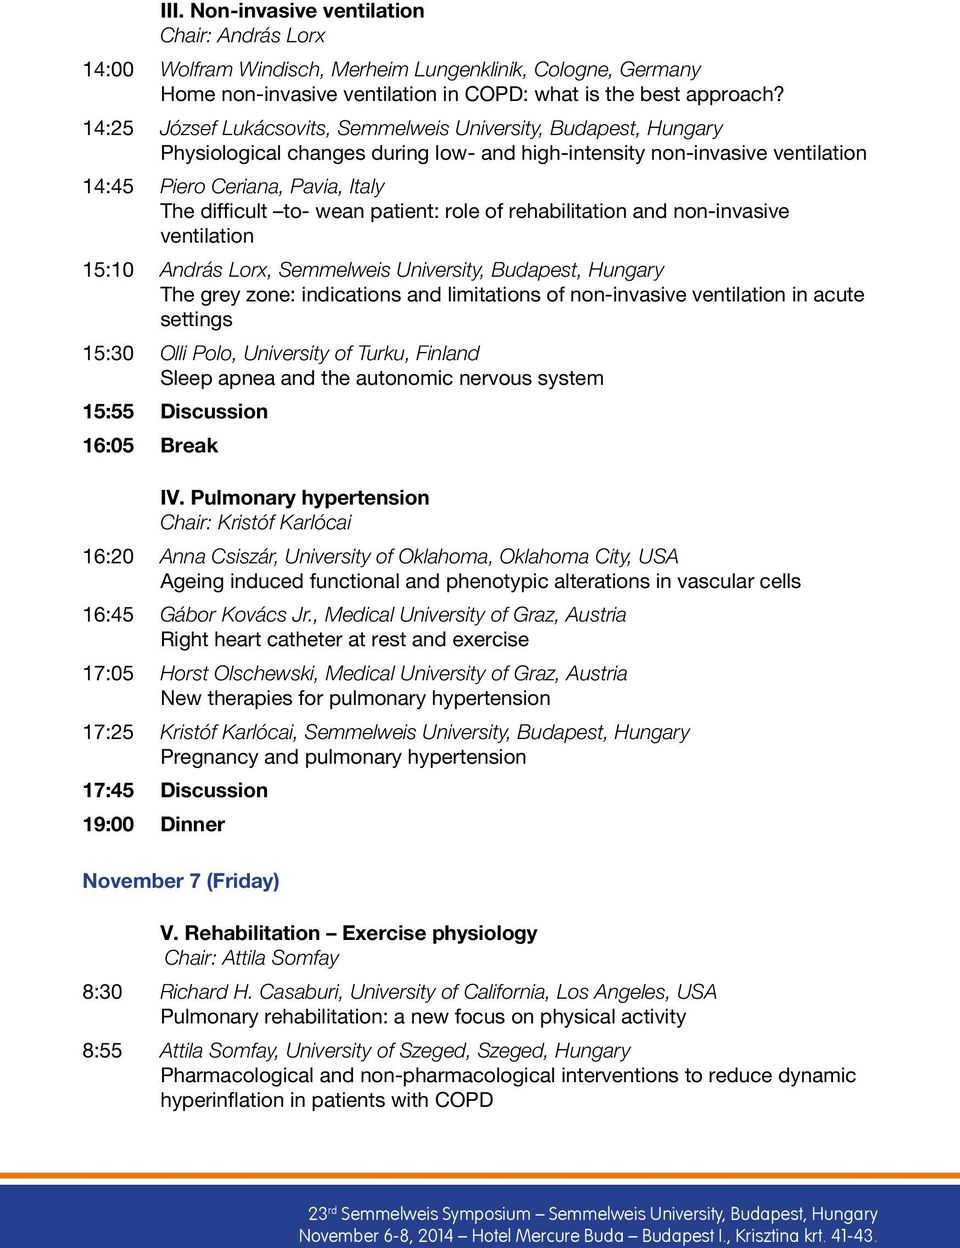 wean patient: role of rehabilitation and non-invasive ventilation 15:10 András Lorx, Semmelweis University, Budapest, Hungary The grey zone: indications and limitations of non-invasive ventilation in